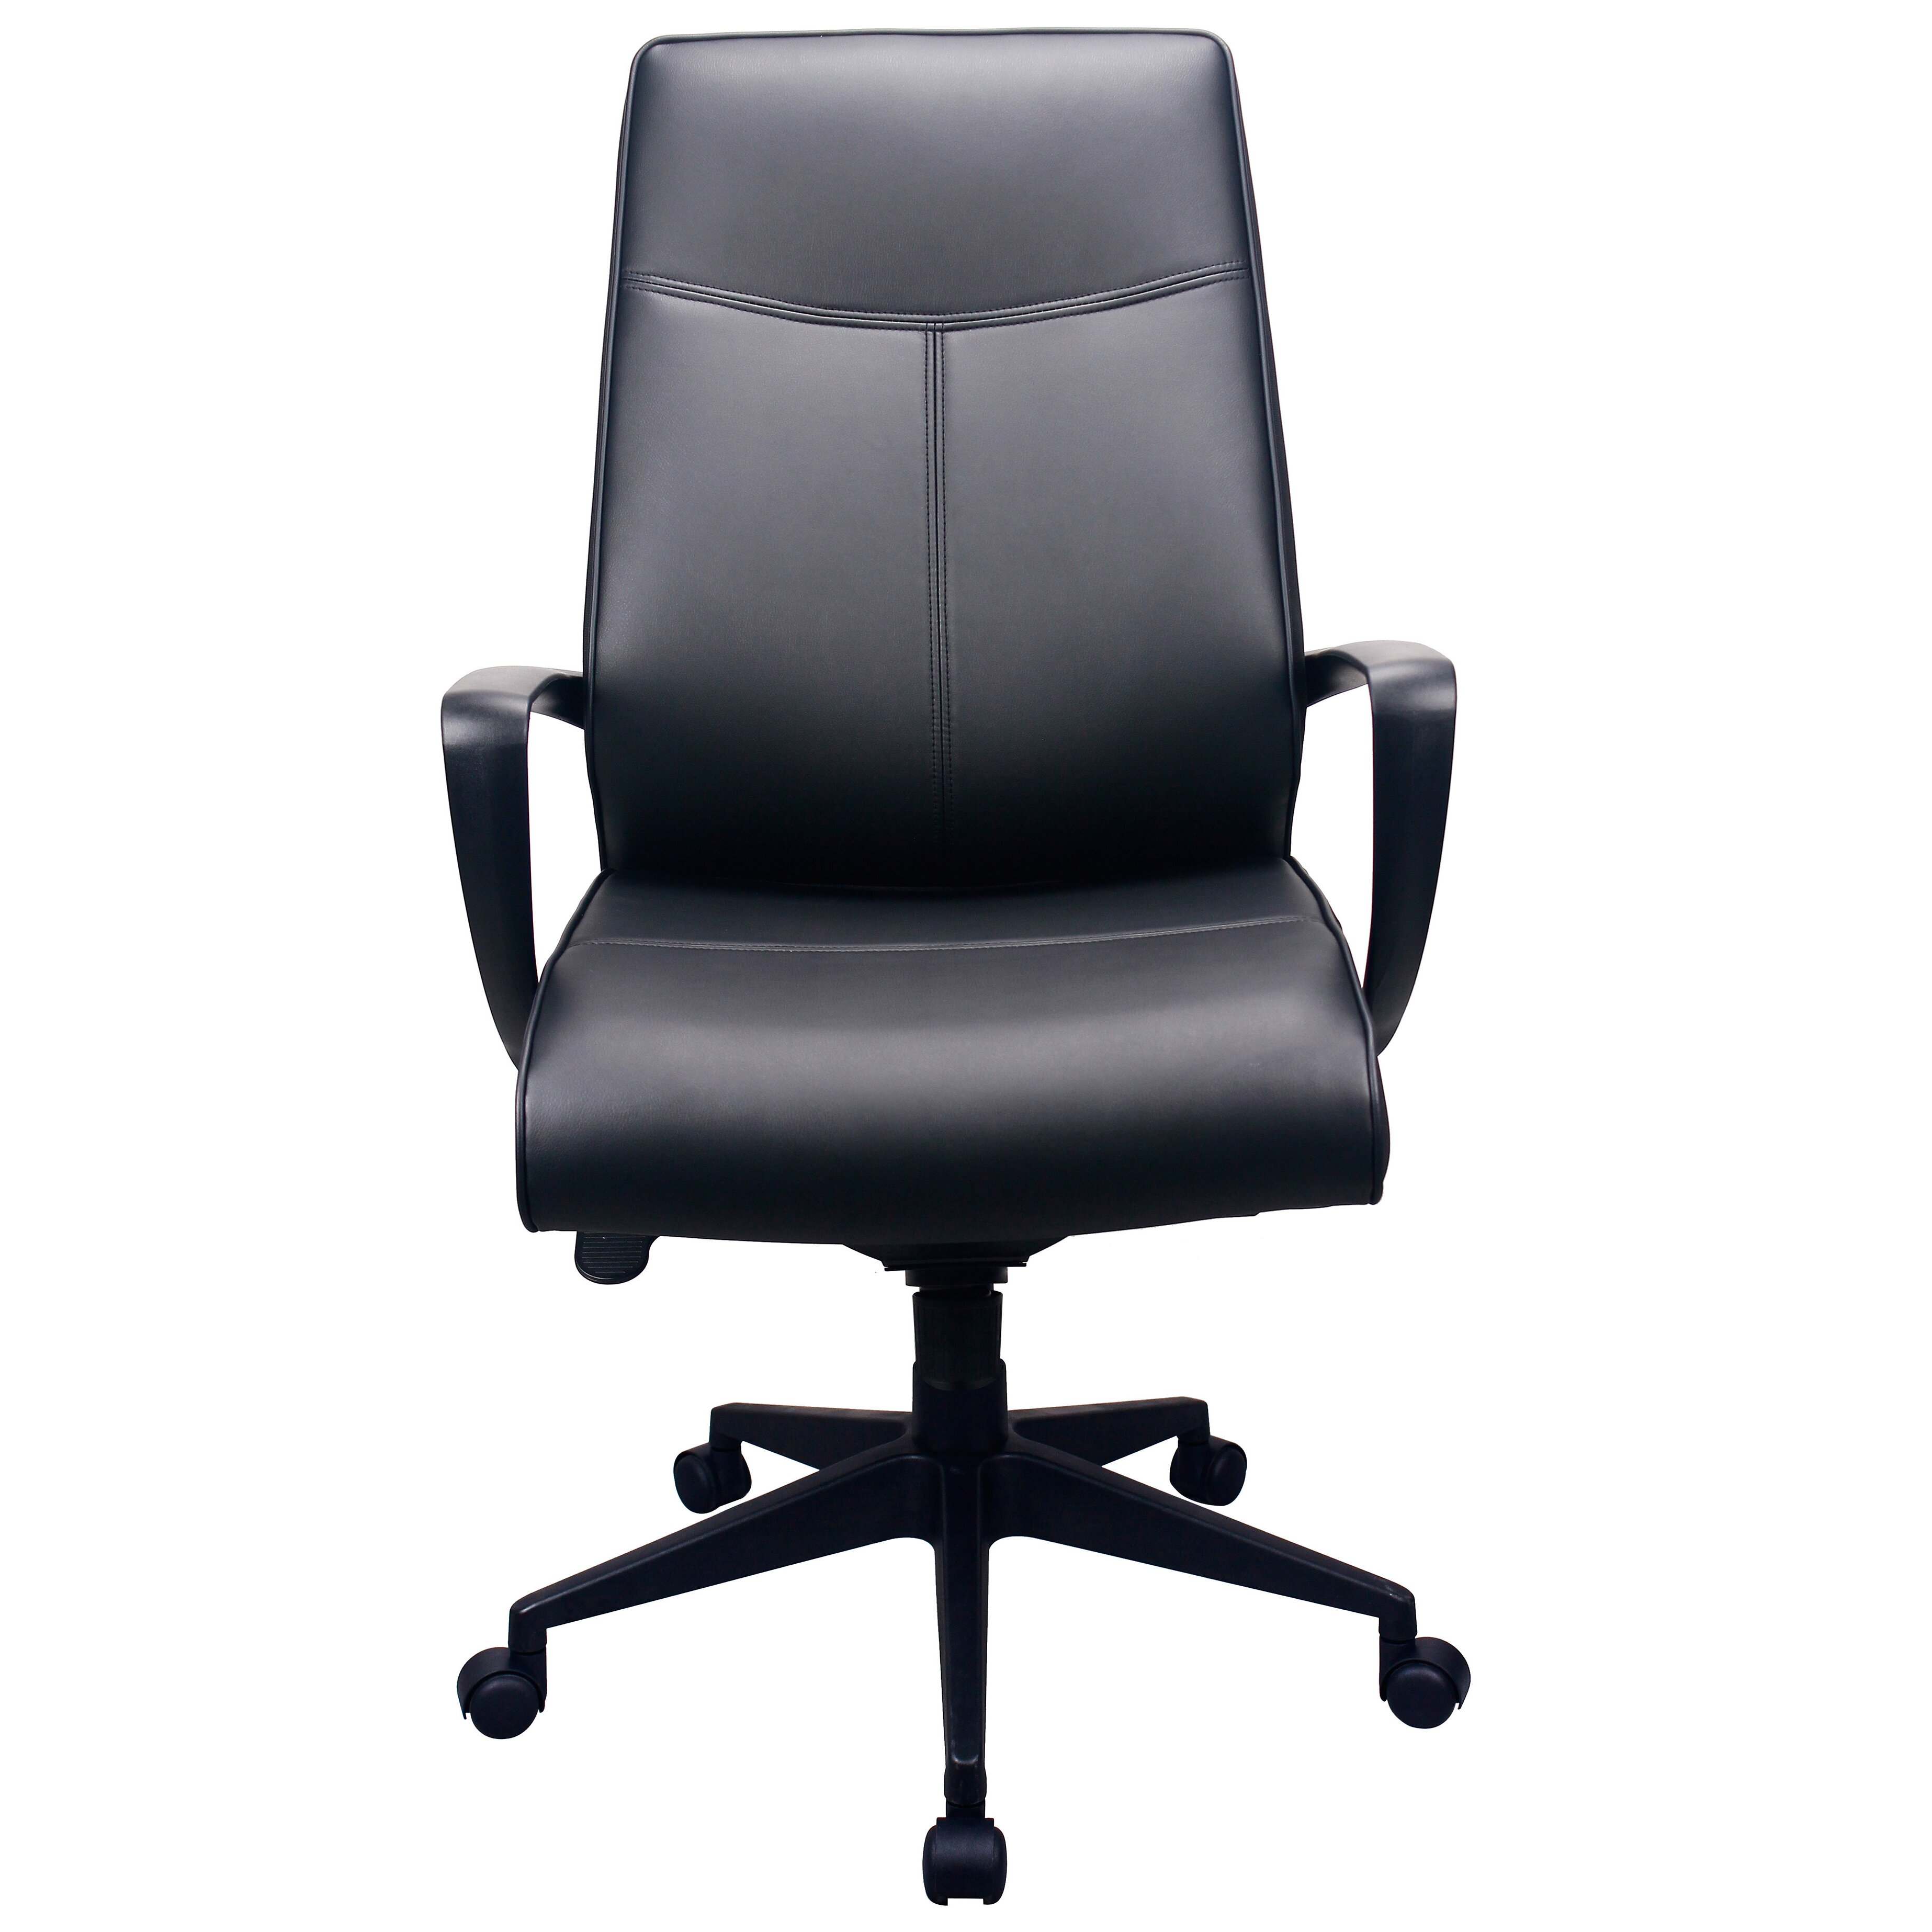 Tempur pedic high back leather executive office chair with for High back leather chairs